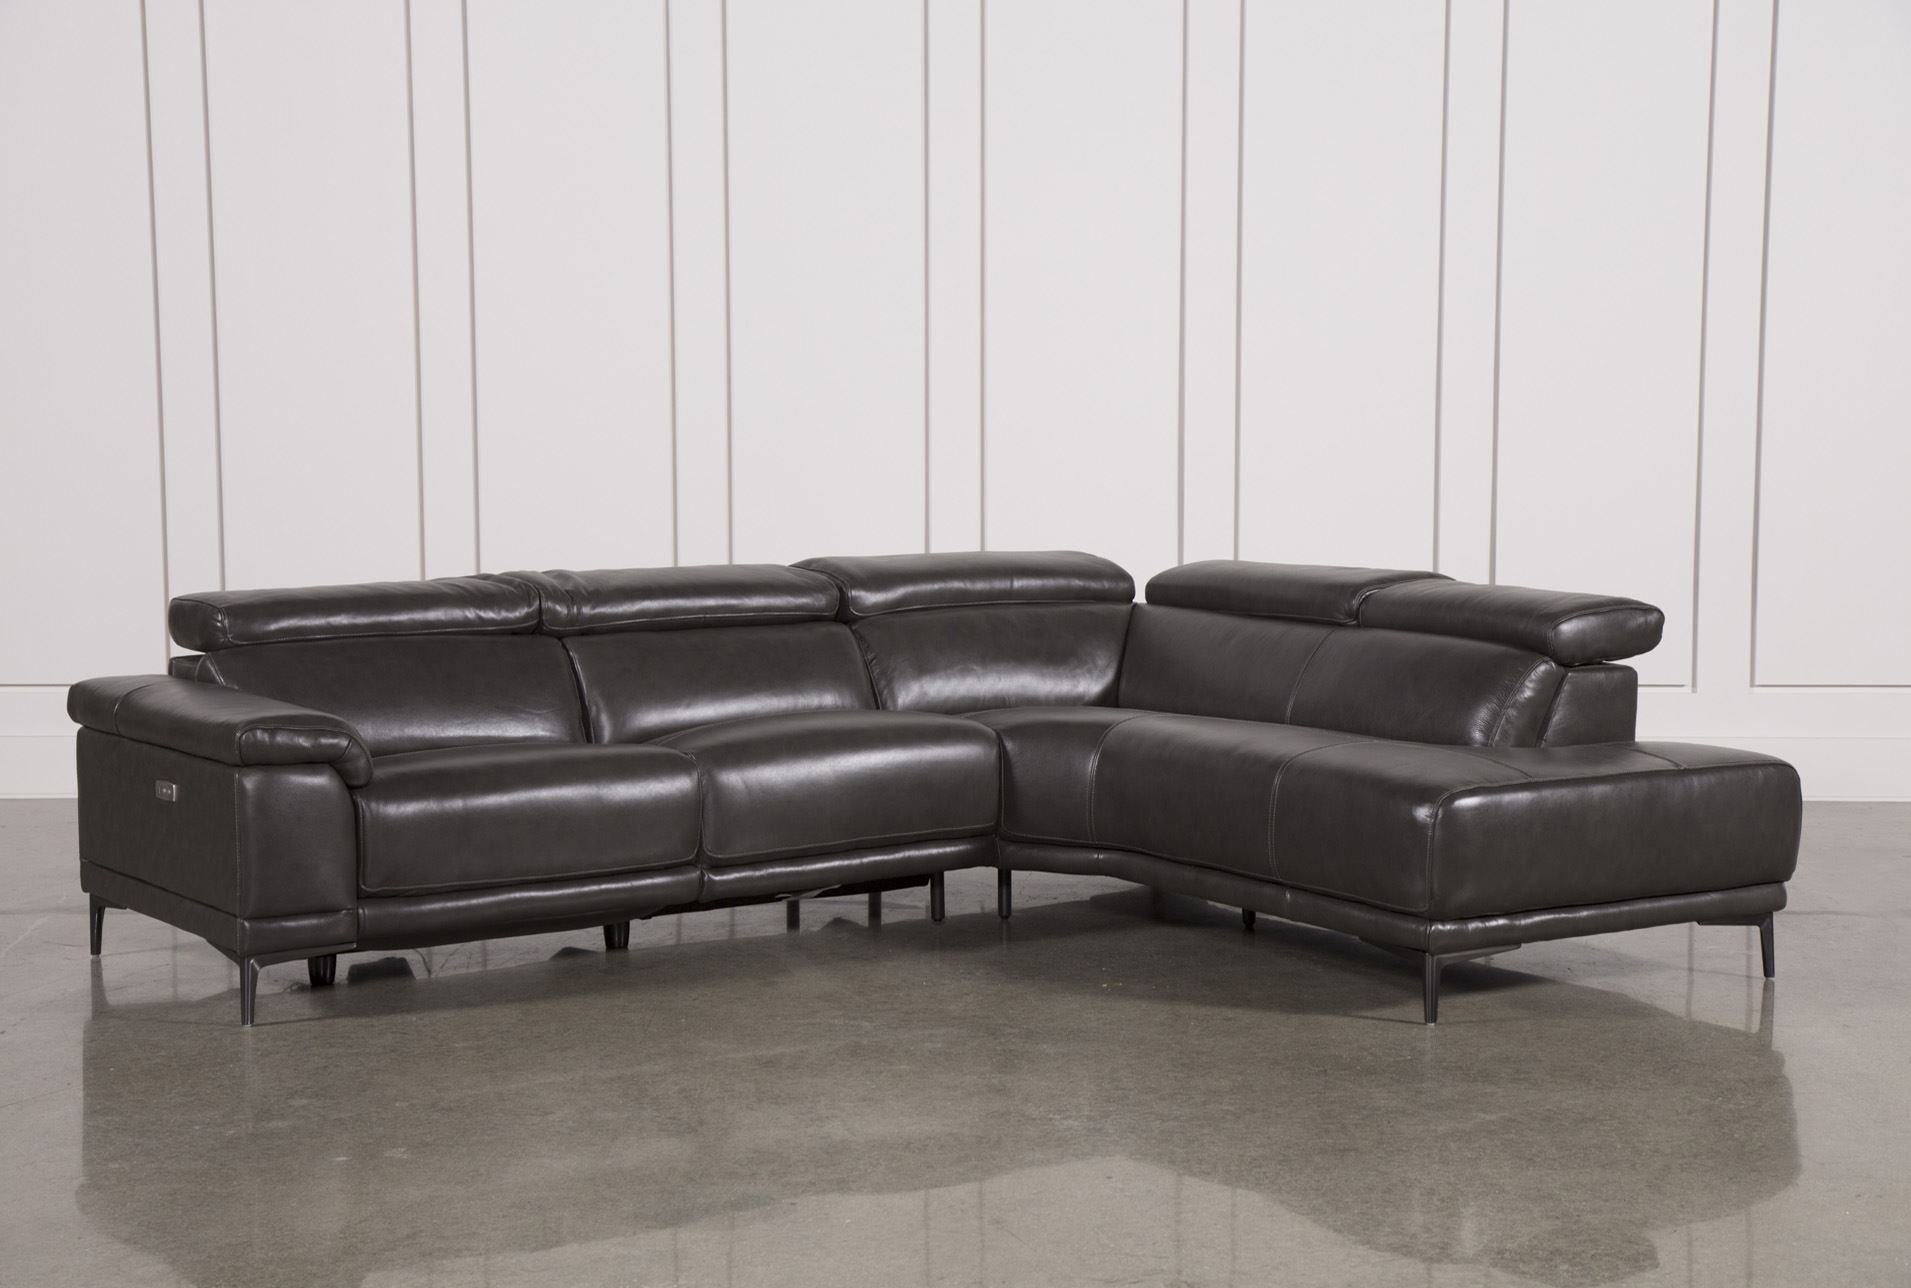 Tatum Dark Grey 2 Piece Sectional W/raf Chaise | New Apt | Pinterest in Turdur 2 Piece Sectionals With Laf Loveseat (Image 29 of 30)